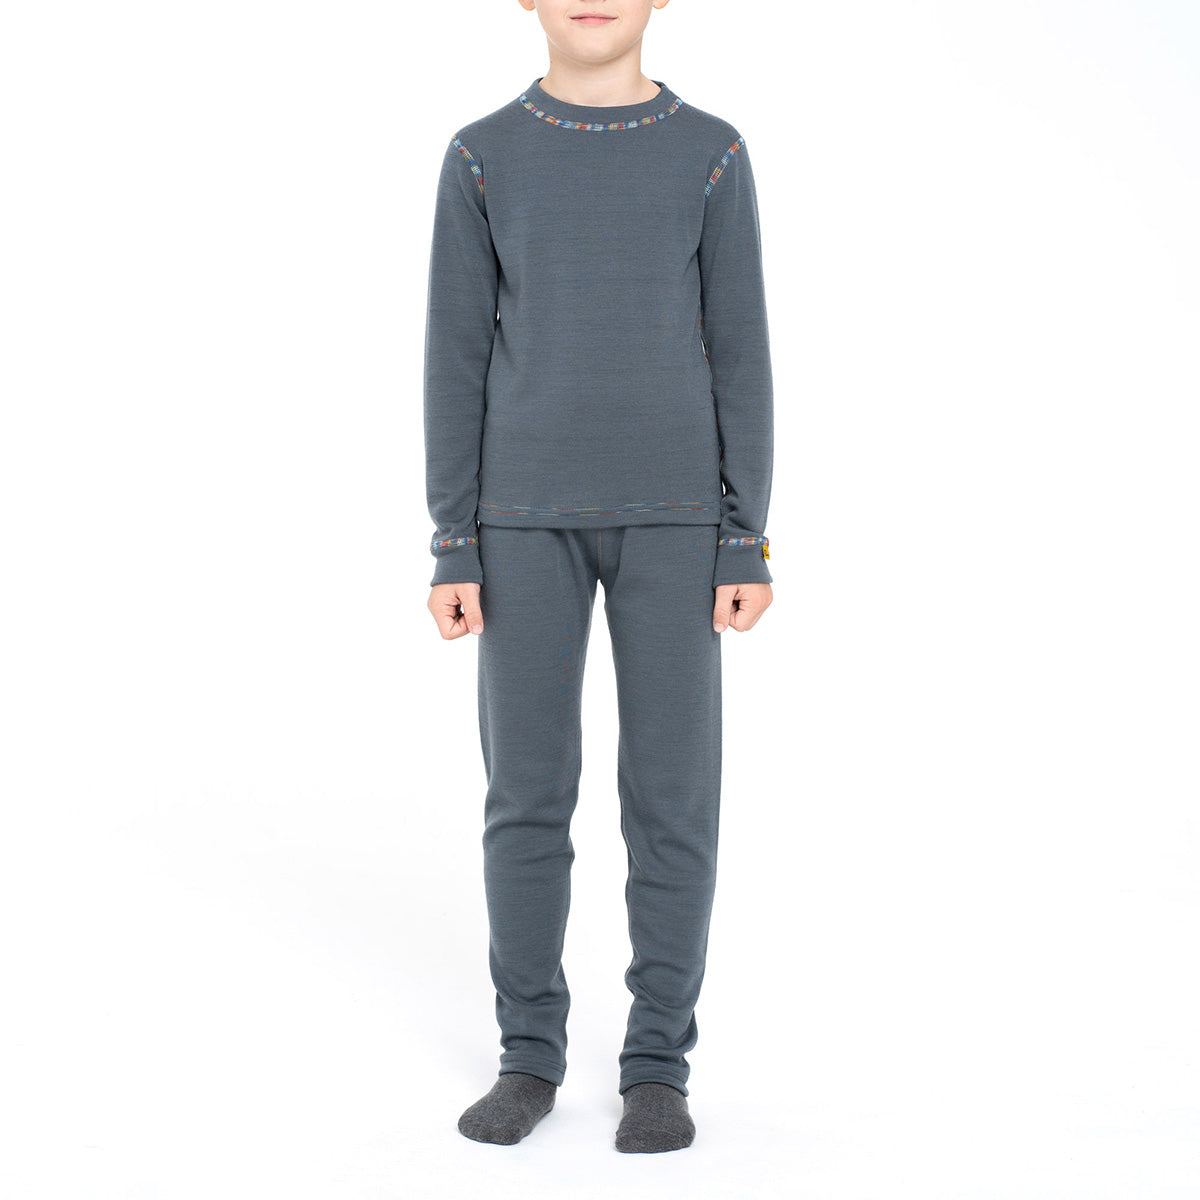 Kids' Merino 250 Long Sleeve Boy Set Perfect Grey front